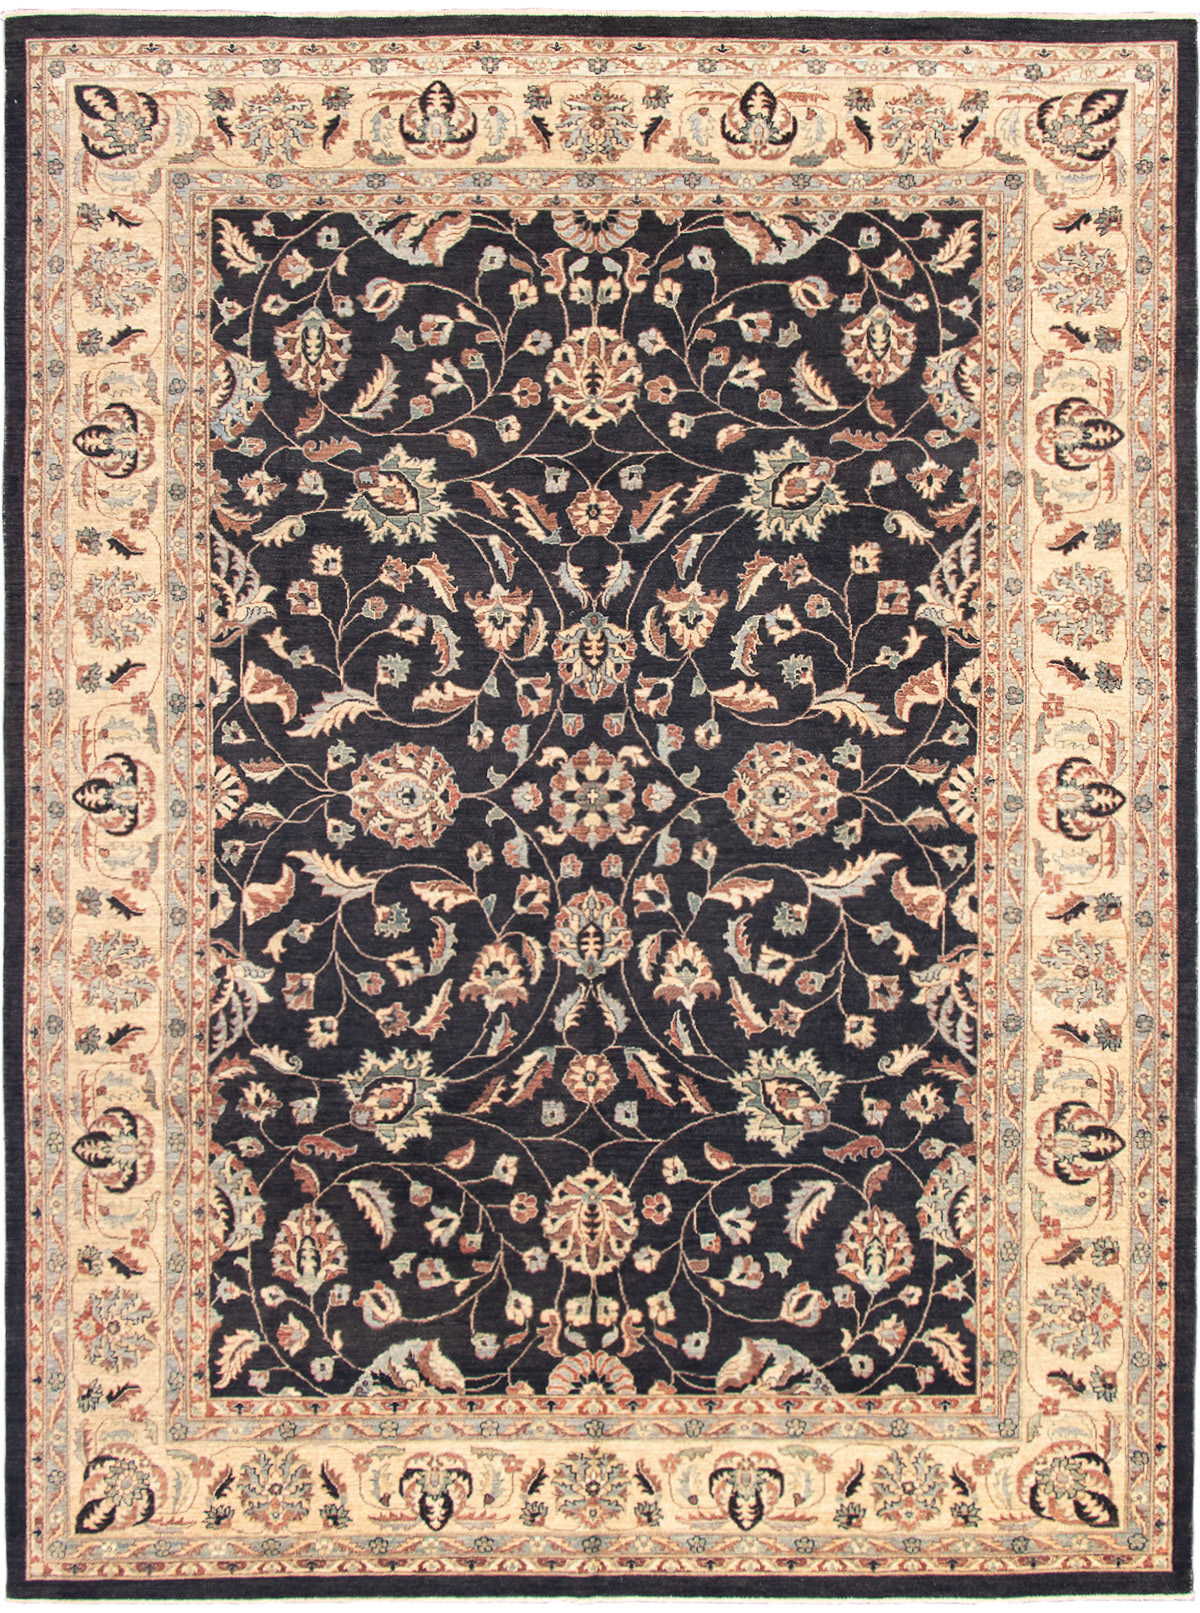 """Hand-knotted Chobi Finest Black Wool Rug 9'10"""" x 13'5"""" Size: 9'10"""" x 13'5"""""""